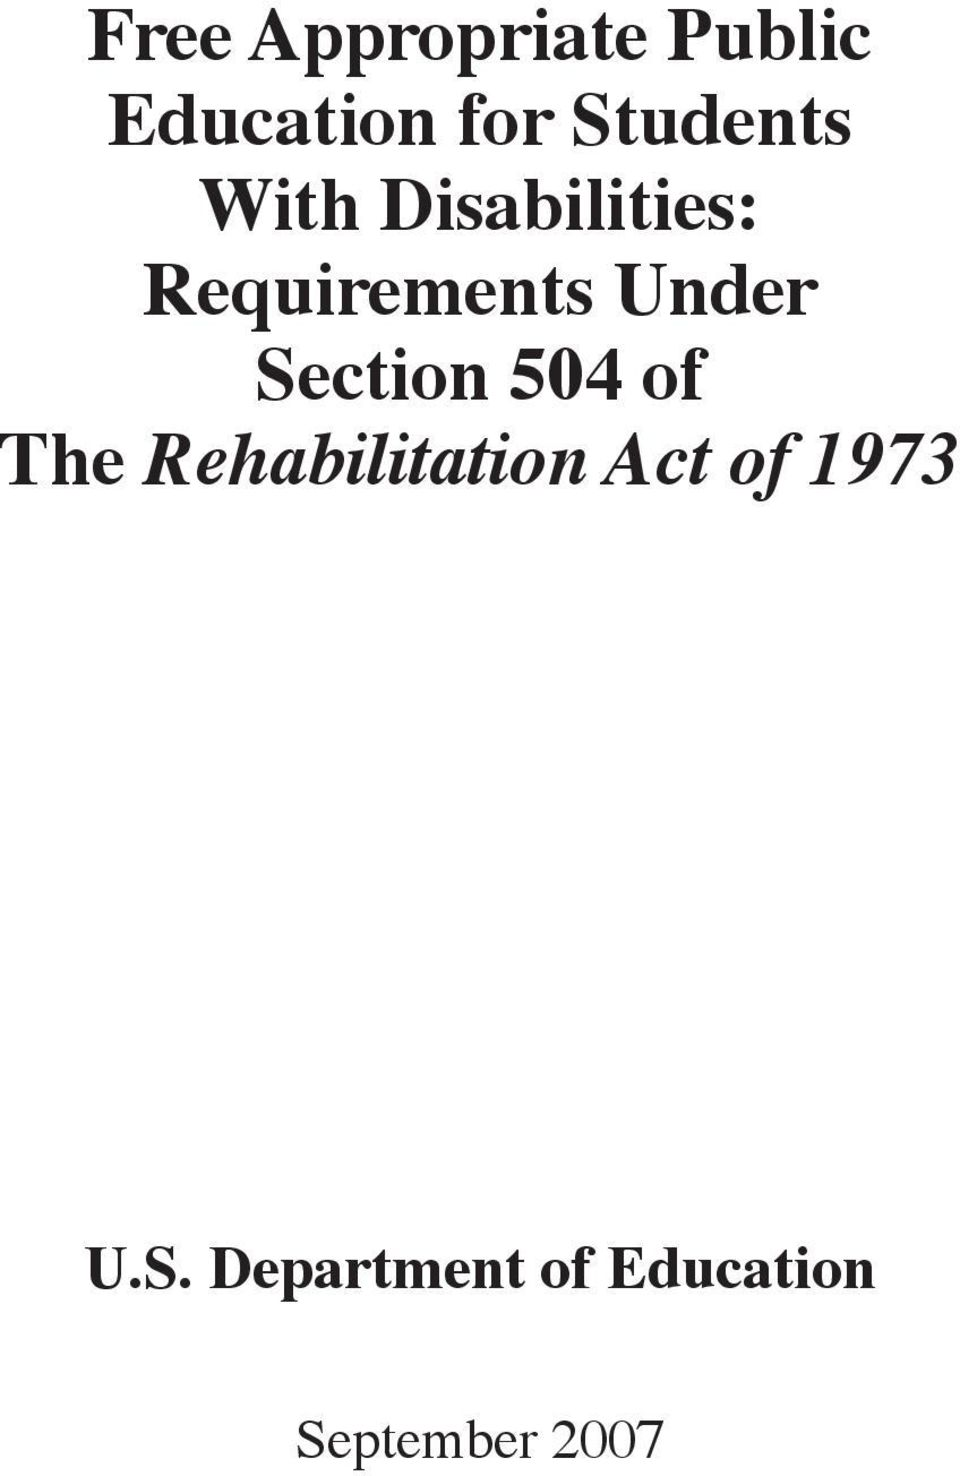 Under Section 504 of The Rehabilitation Act